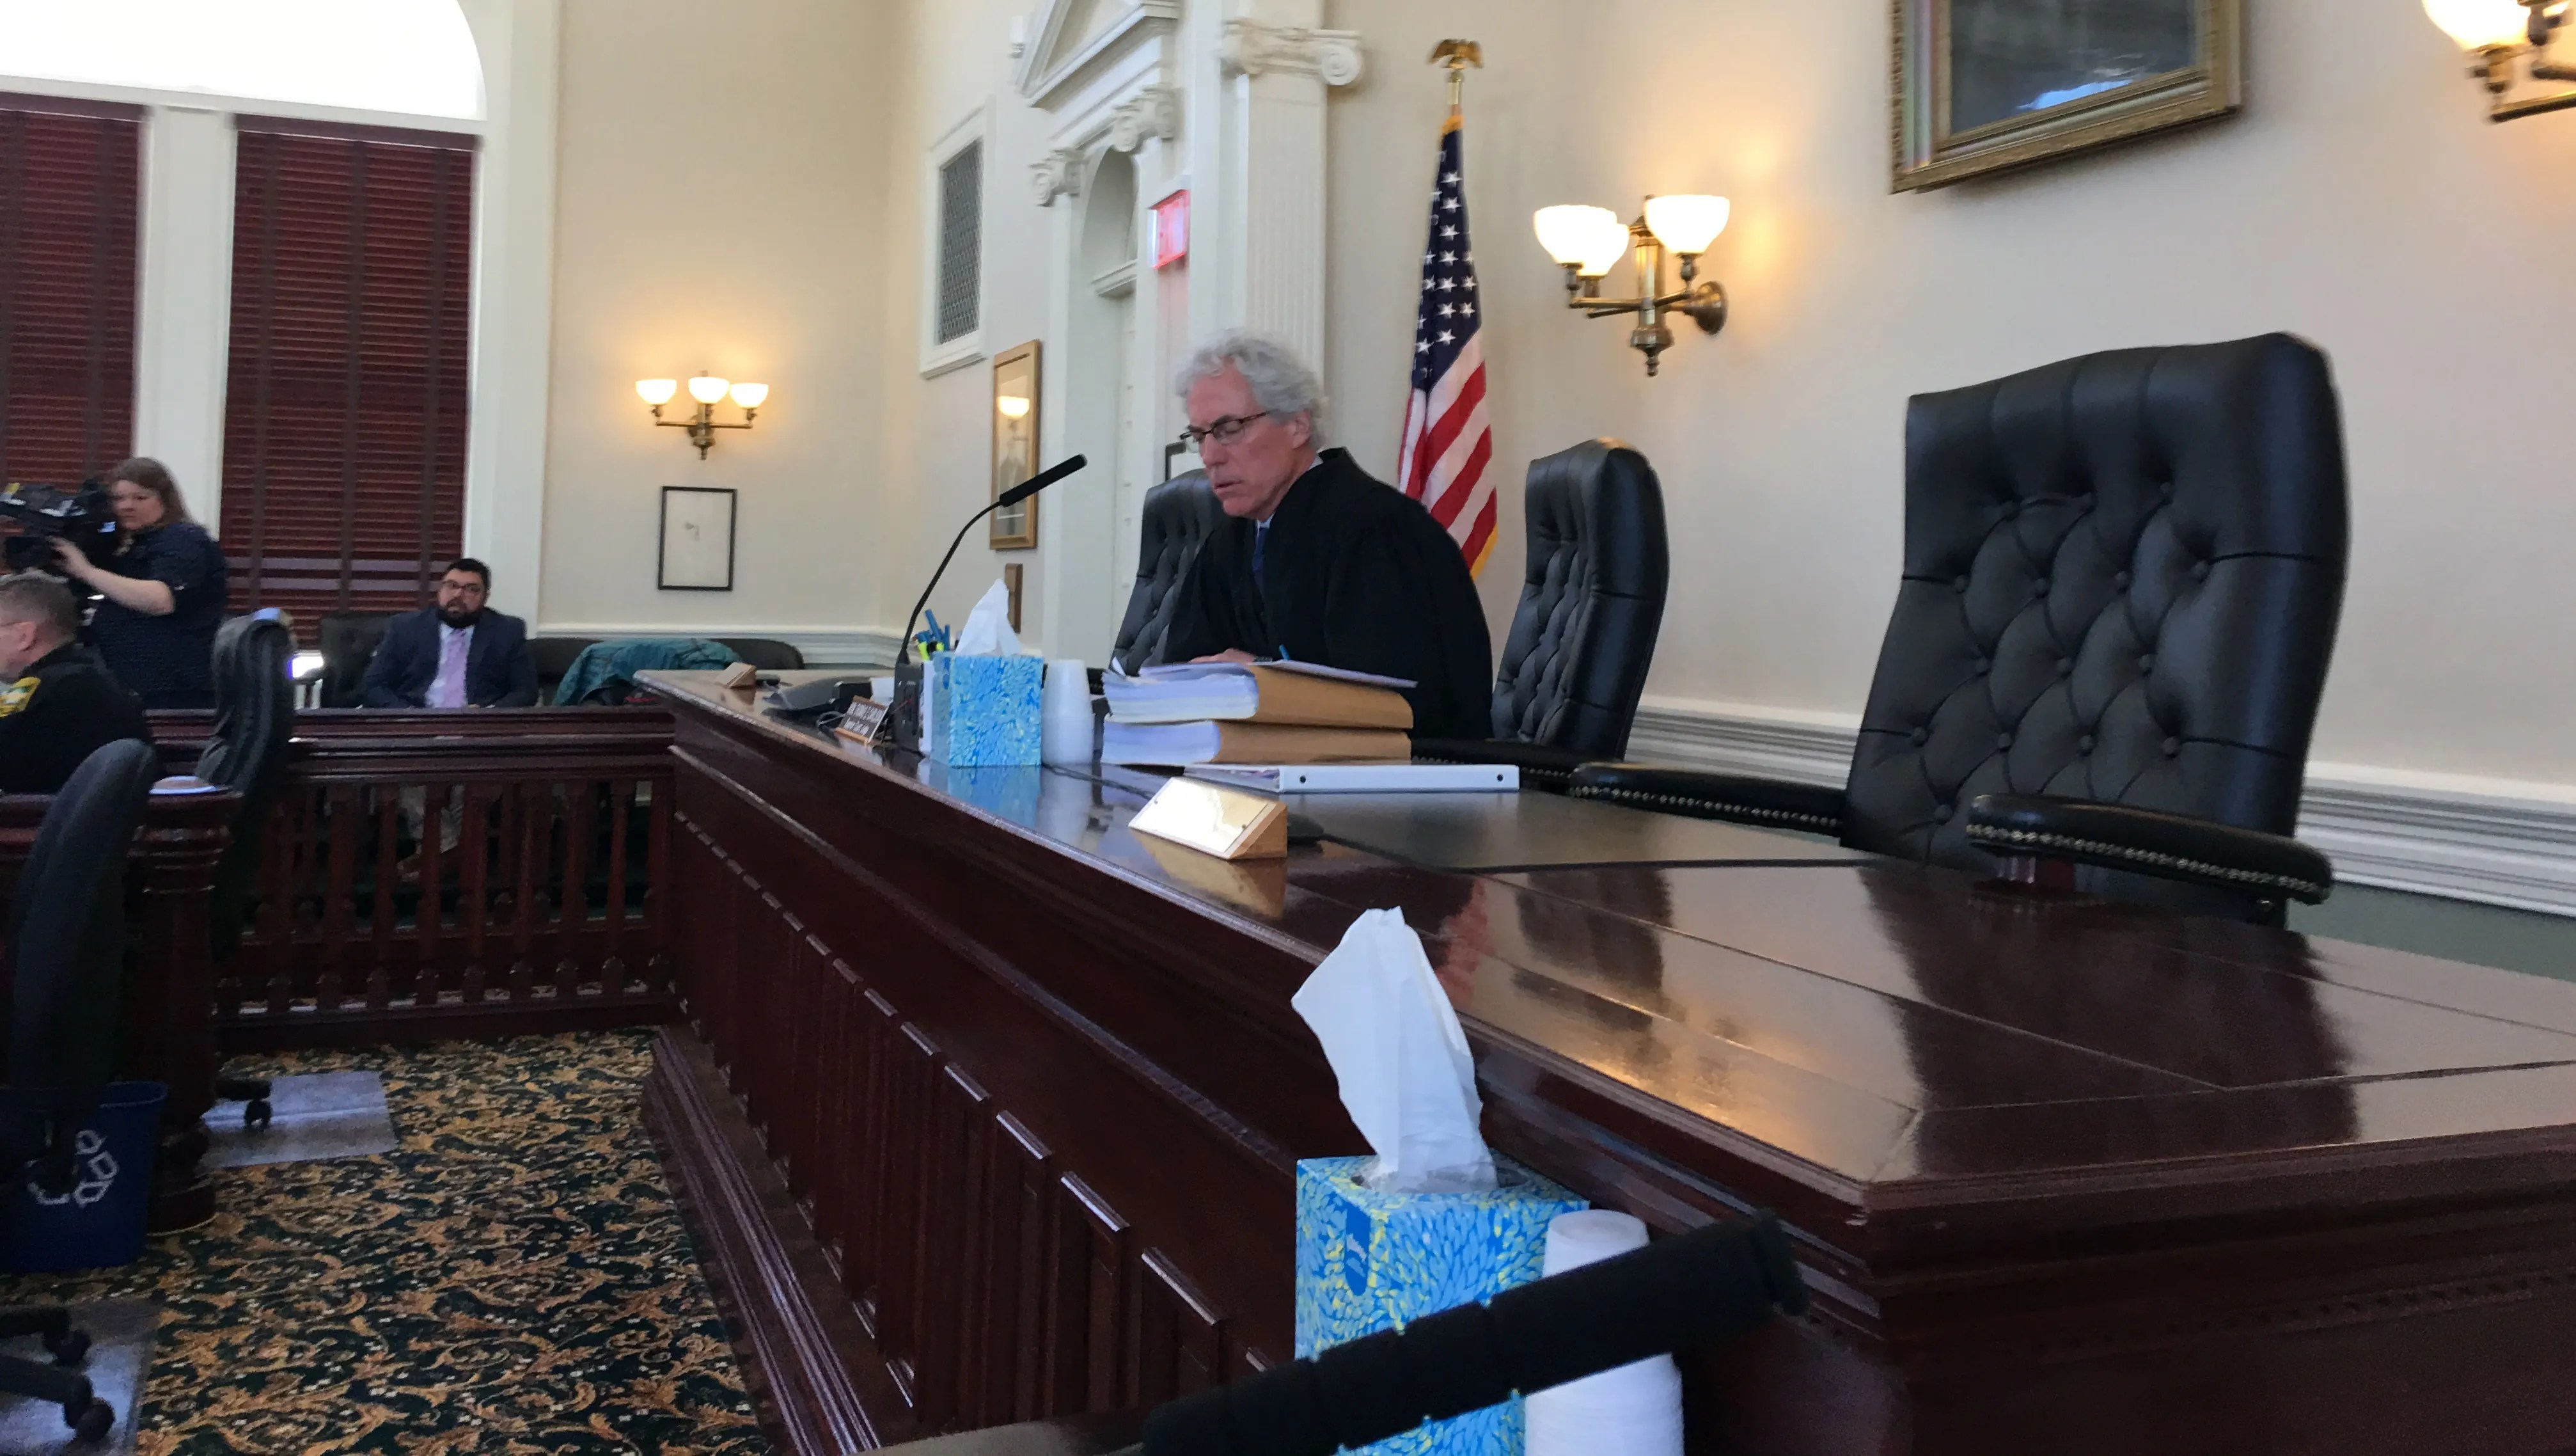 Vermont Superior Court Judge Thomas Carlson presides over legal proceedings in the EB-5 civil case on Monday March 19 in Hyde Park.